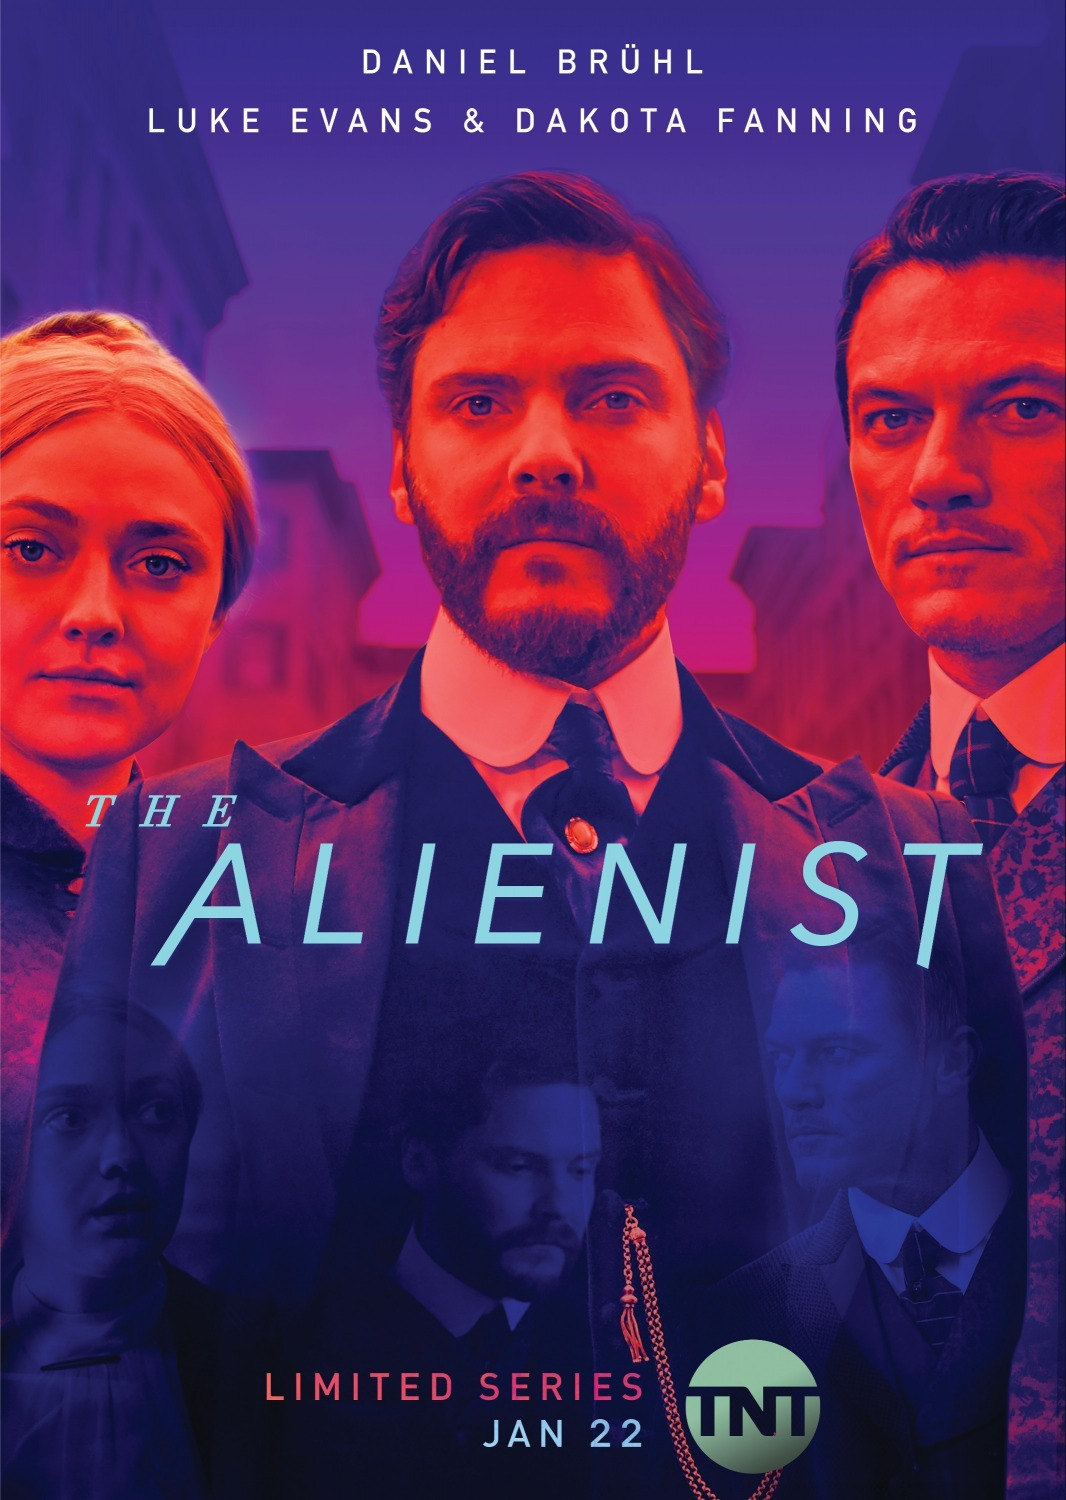 The Alienist S02 2020 Hindi Complete Netflix Web Series 720p HDRip 2.7GB Download